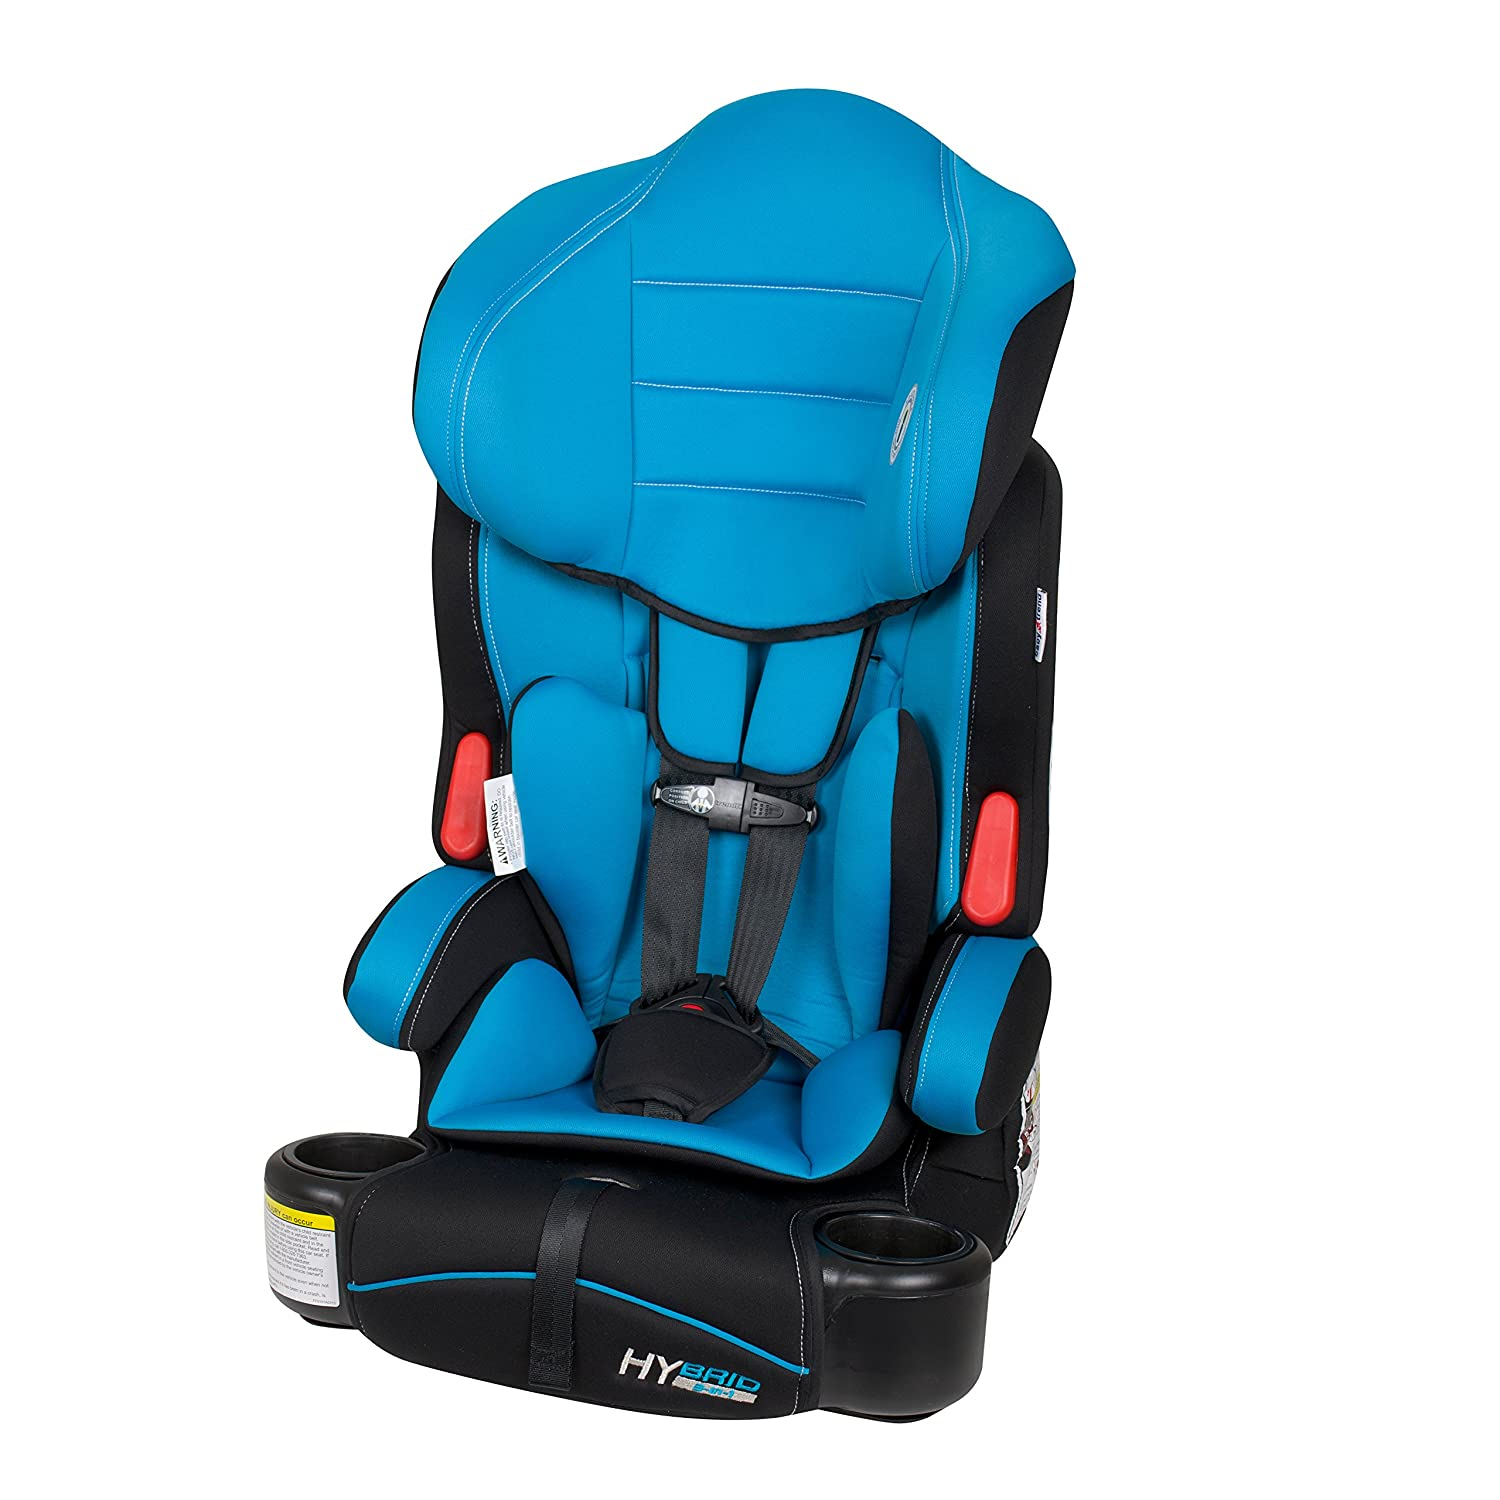 Amazon.com : Baby Trend Hybrid Booster Car Seat, Blue Moon : Baby